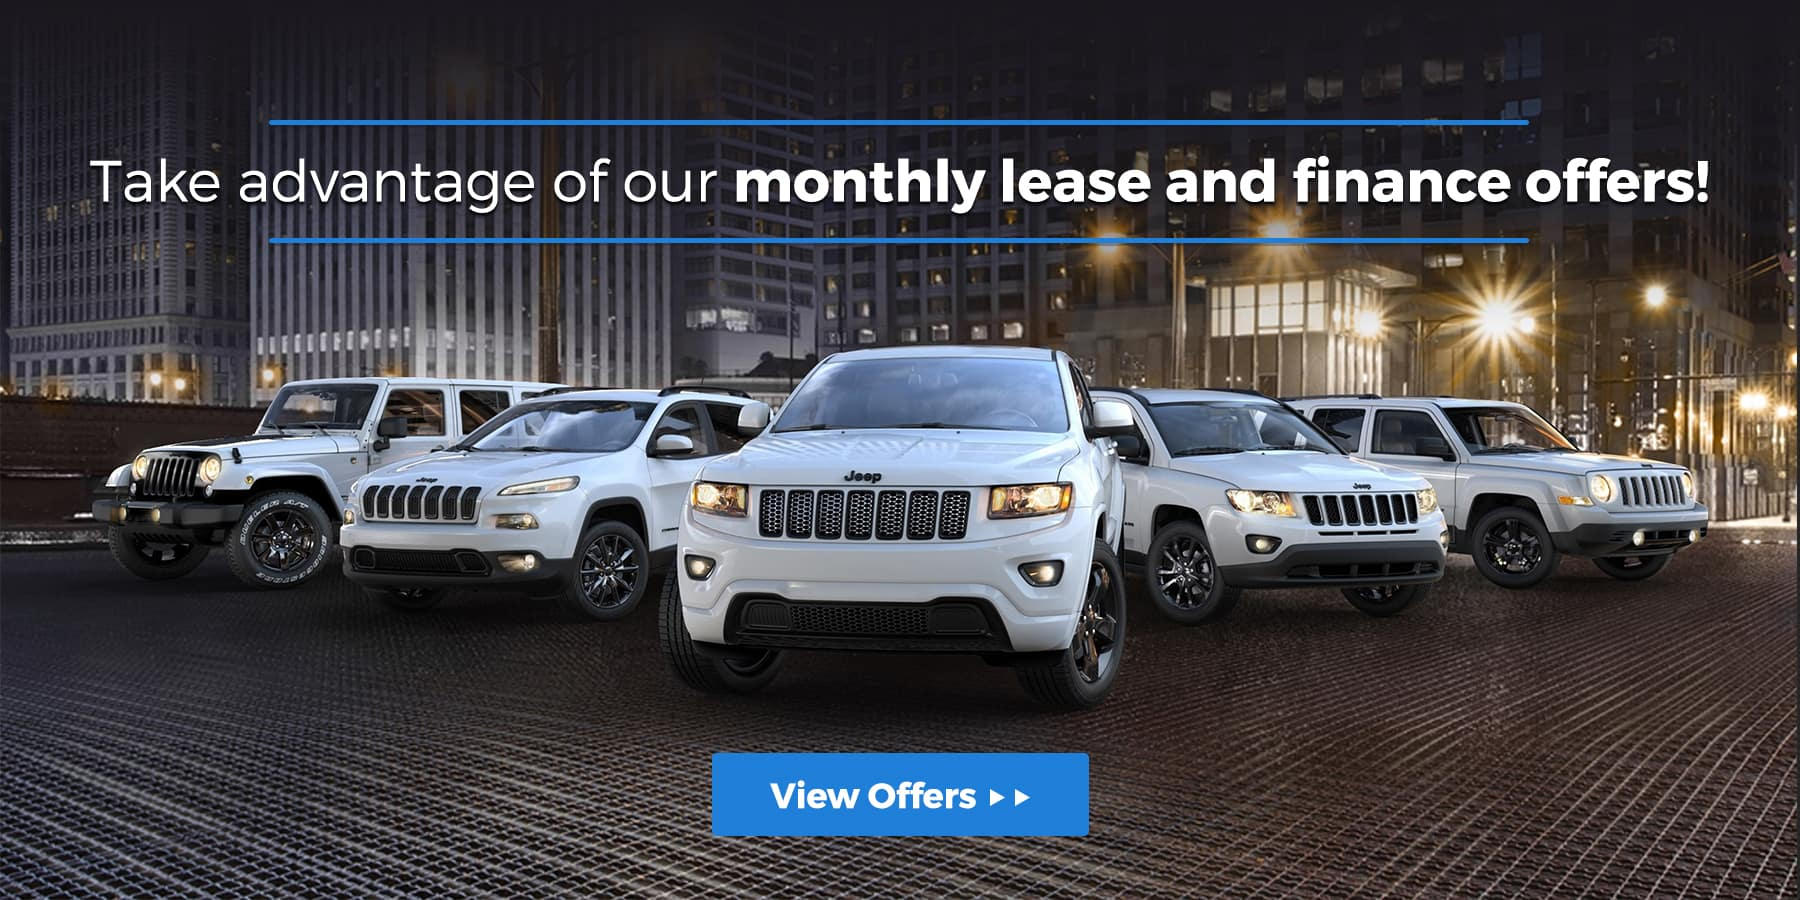 s jeep and mystic dealership chrysler dealer serving htm in motors connecticut ram putnam dodge falvey about region norwich ct dealers new colchester